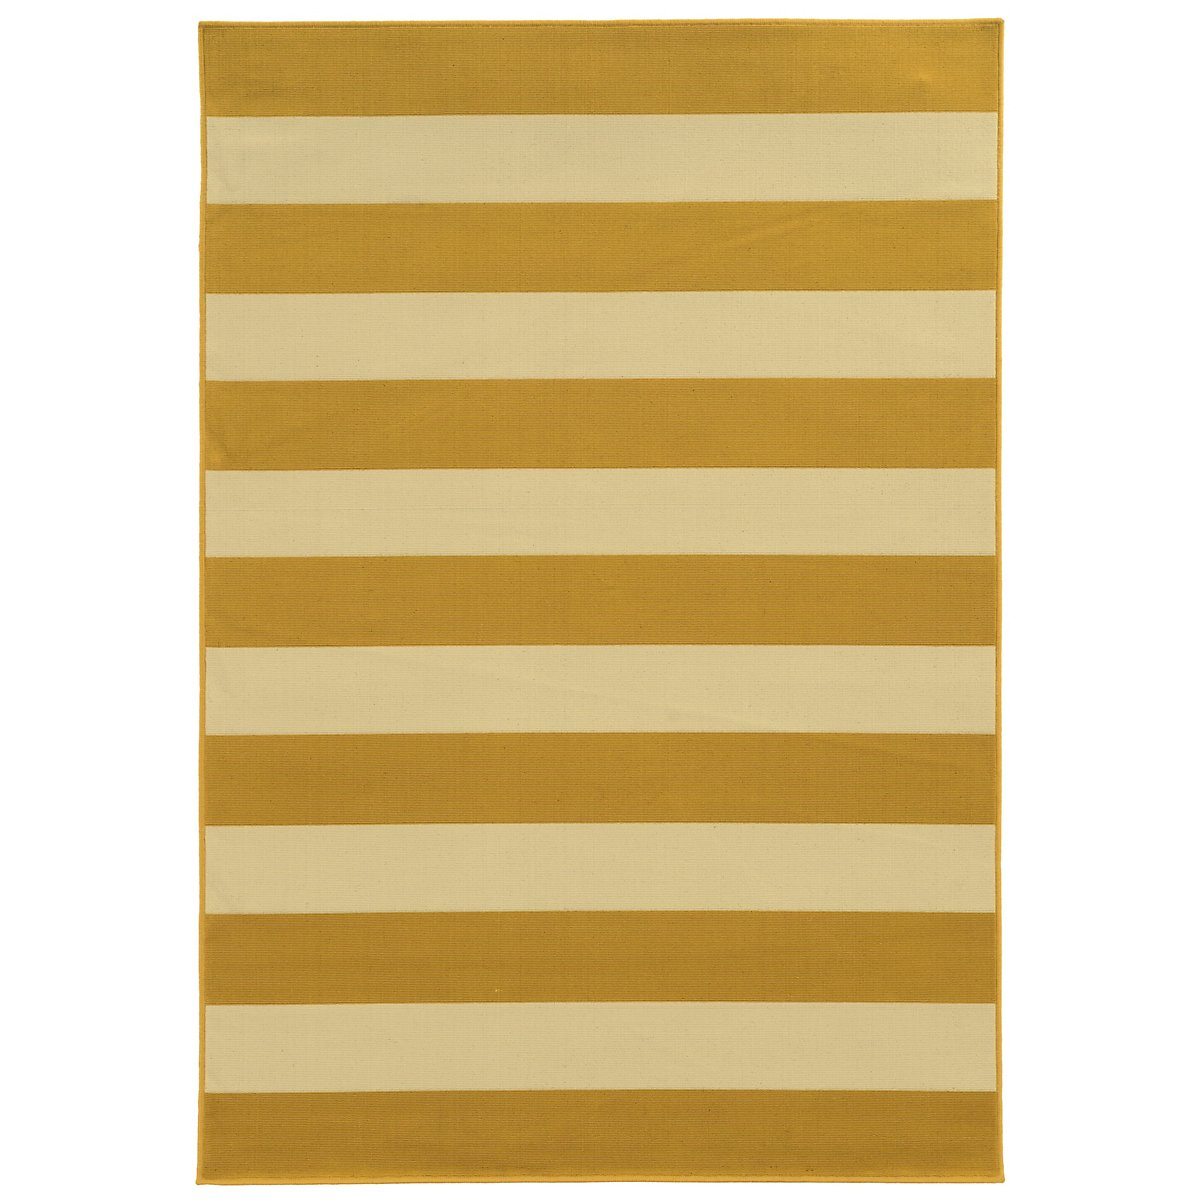 Riviera Yellow Indoor/Outdoor 5x8 Area Rug